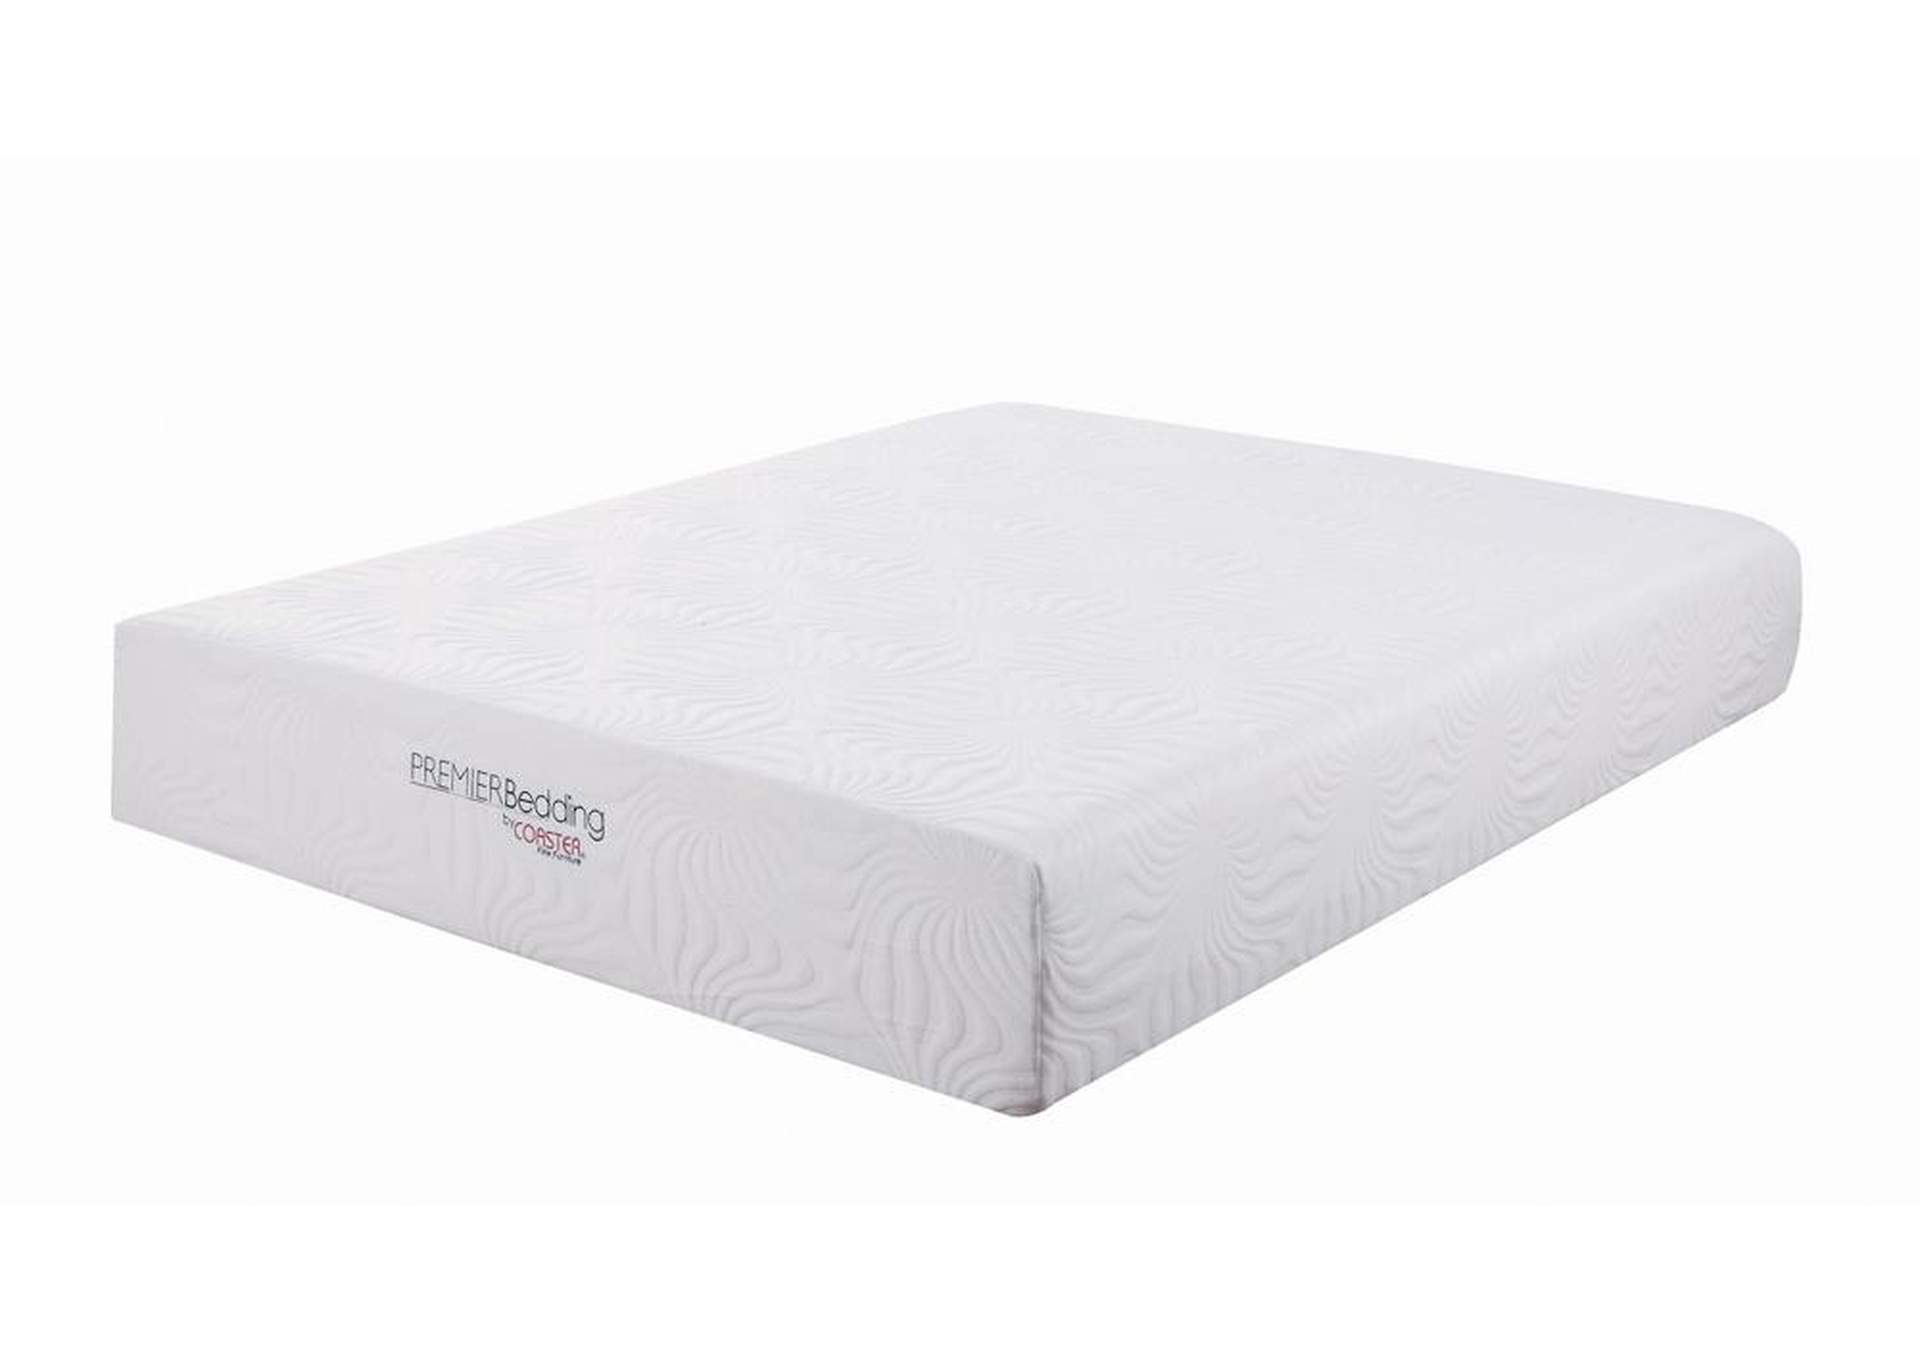 12 King Memory Foam Mattress,Coaster Furniture